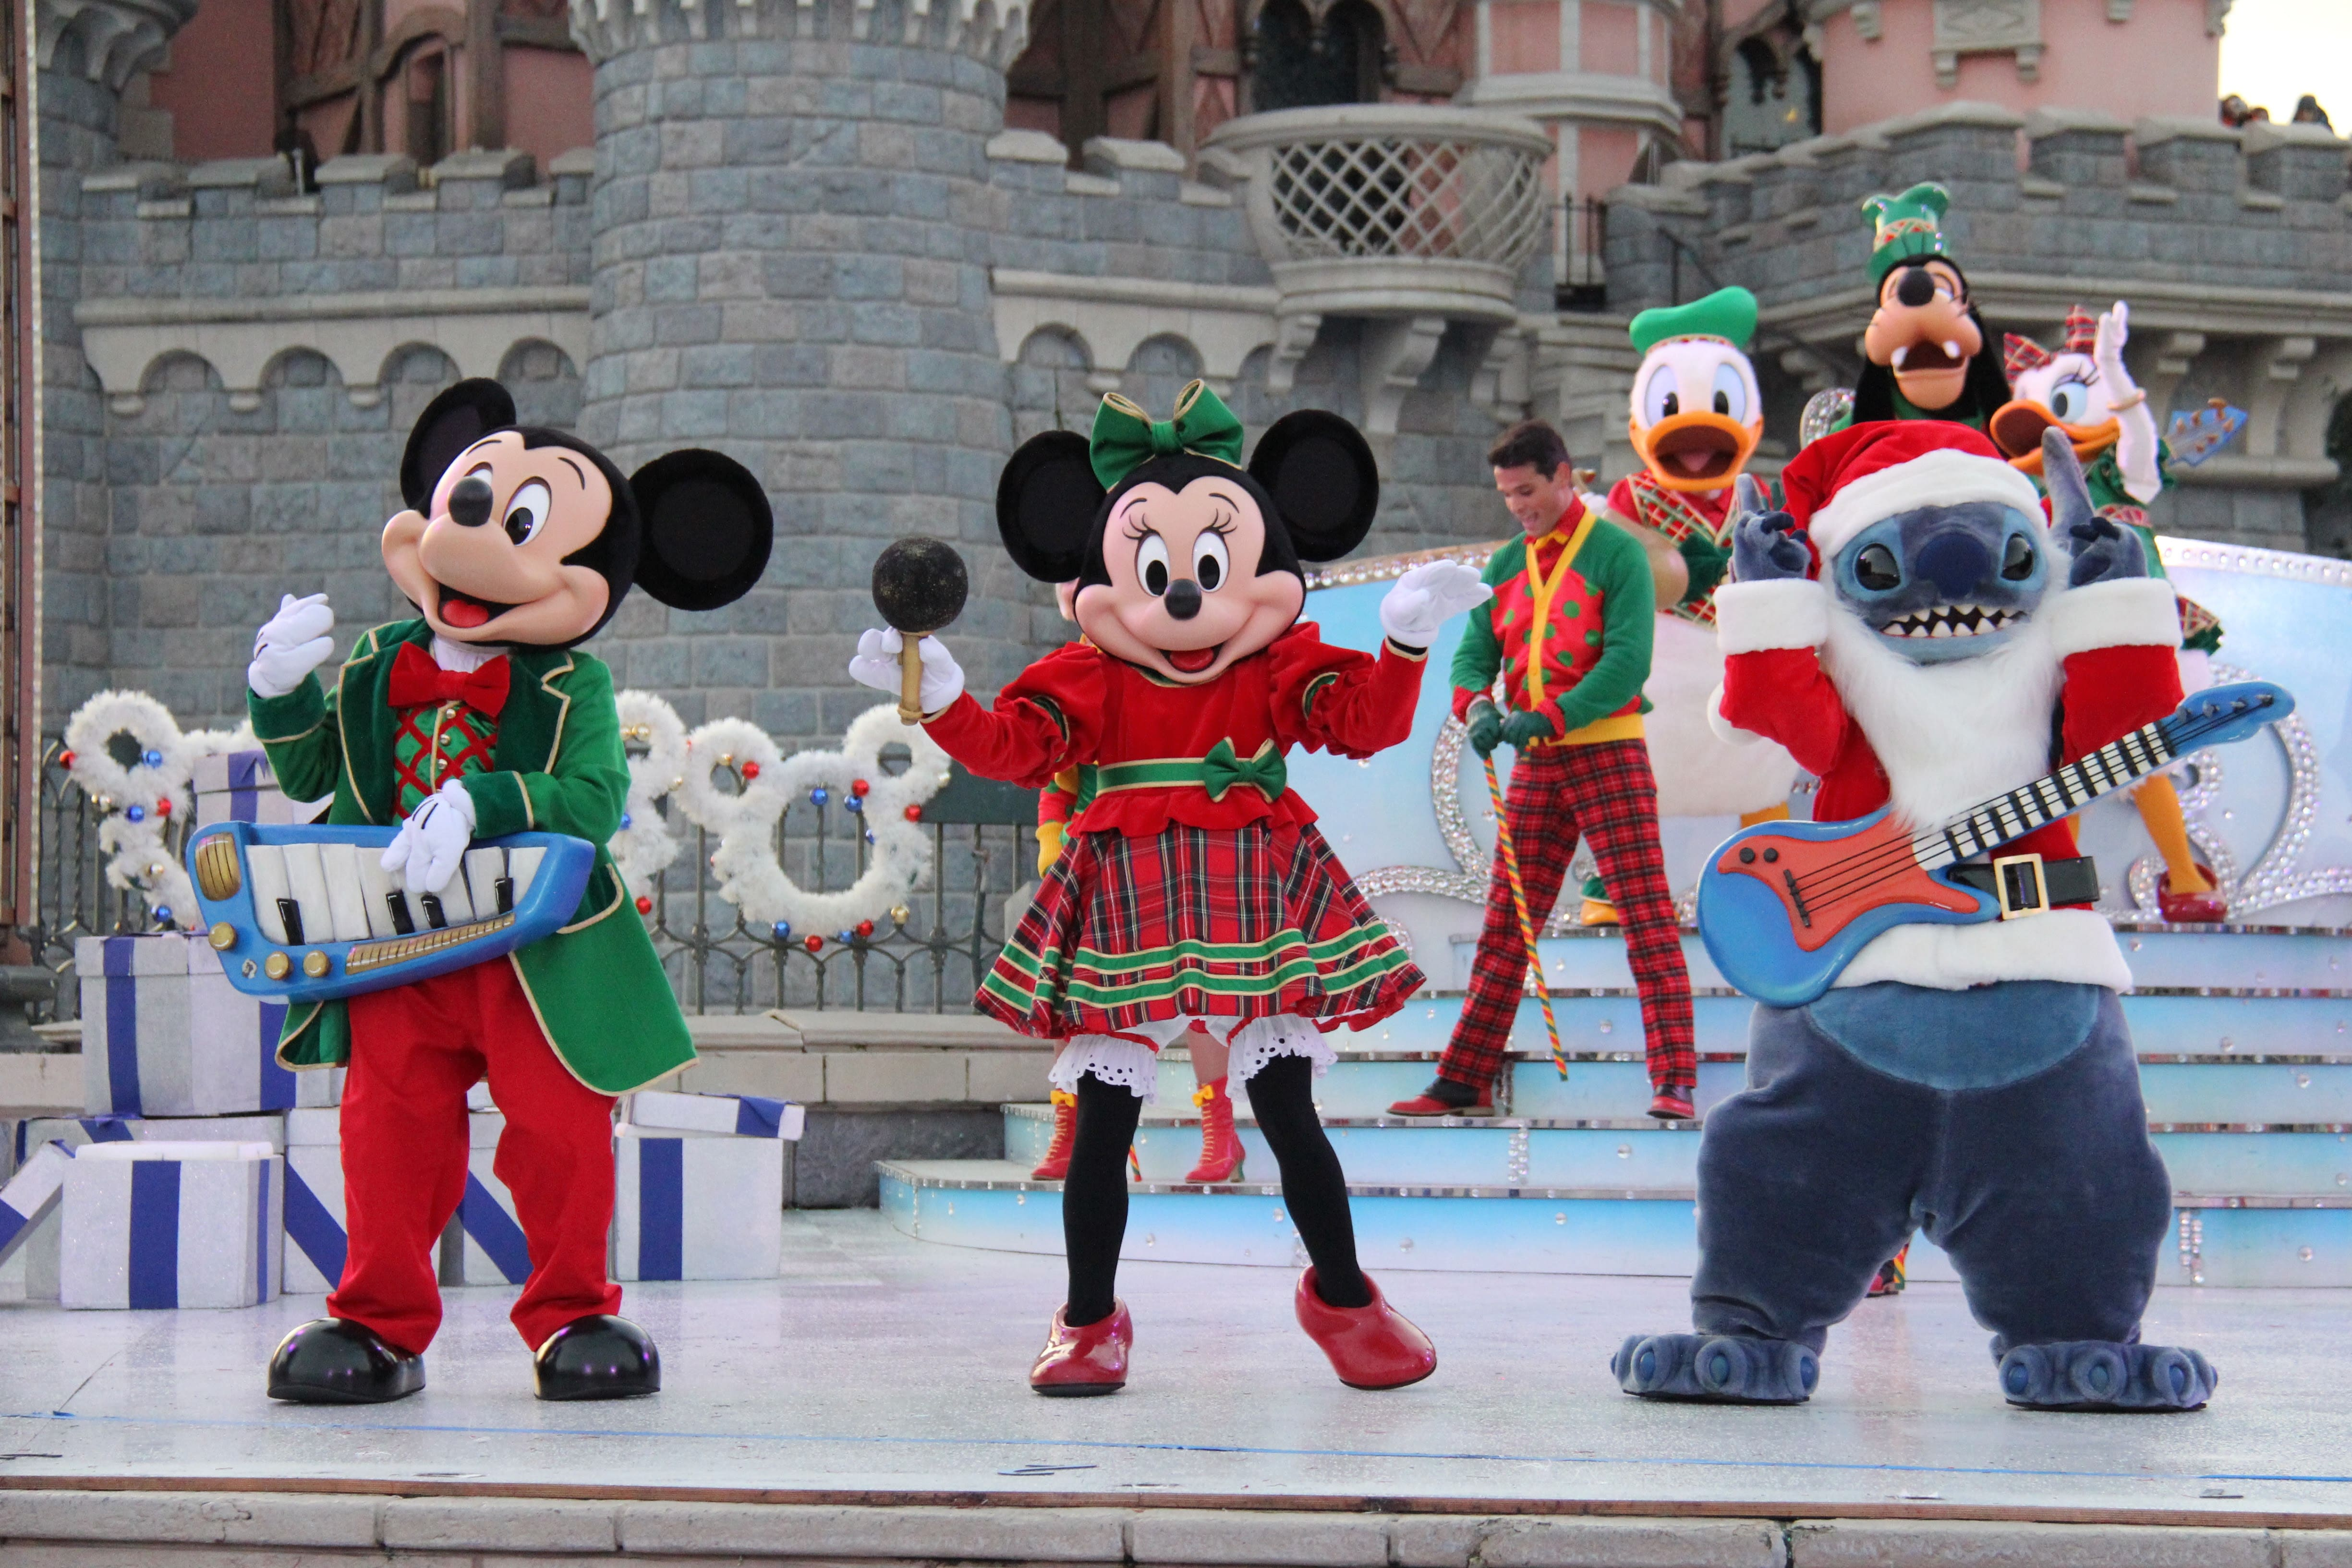 christmas 2018 disneyland paris travel to the magic - When Does Christmas Start At Disneyland